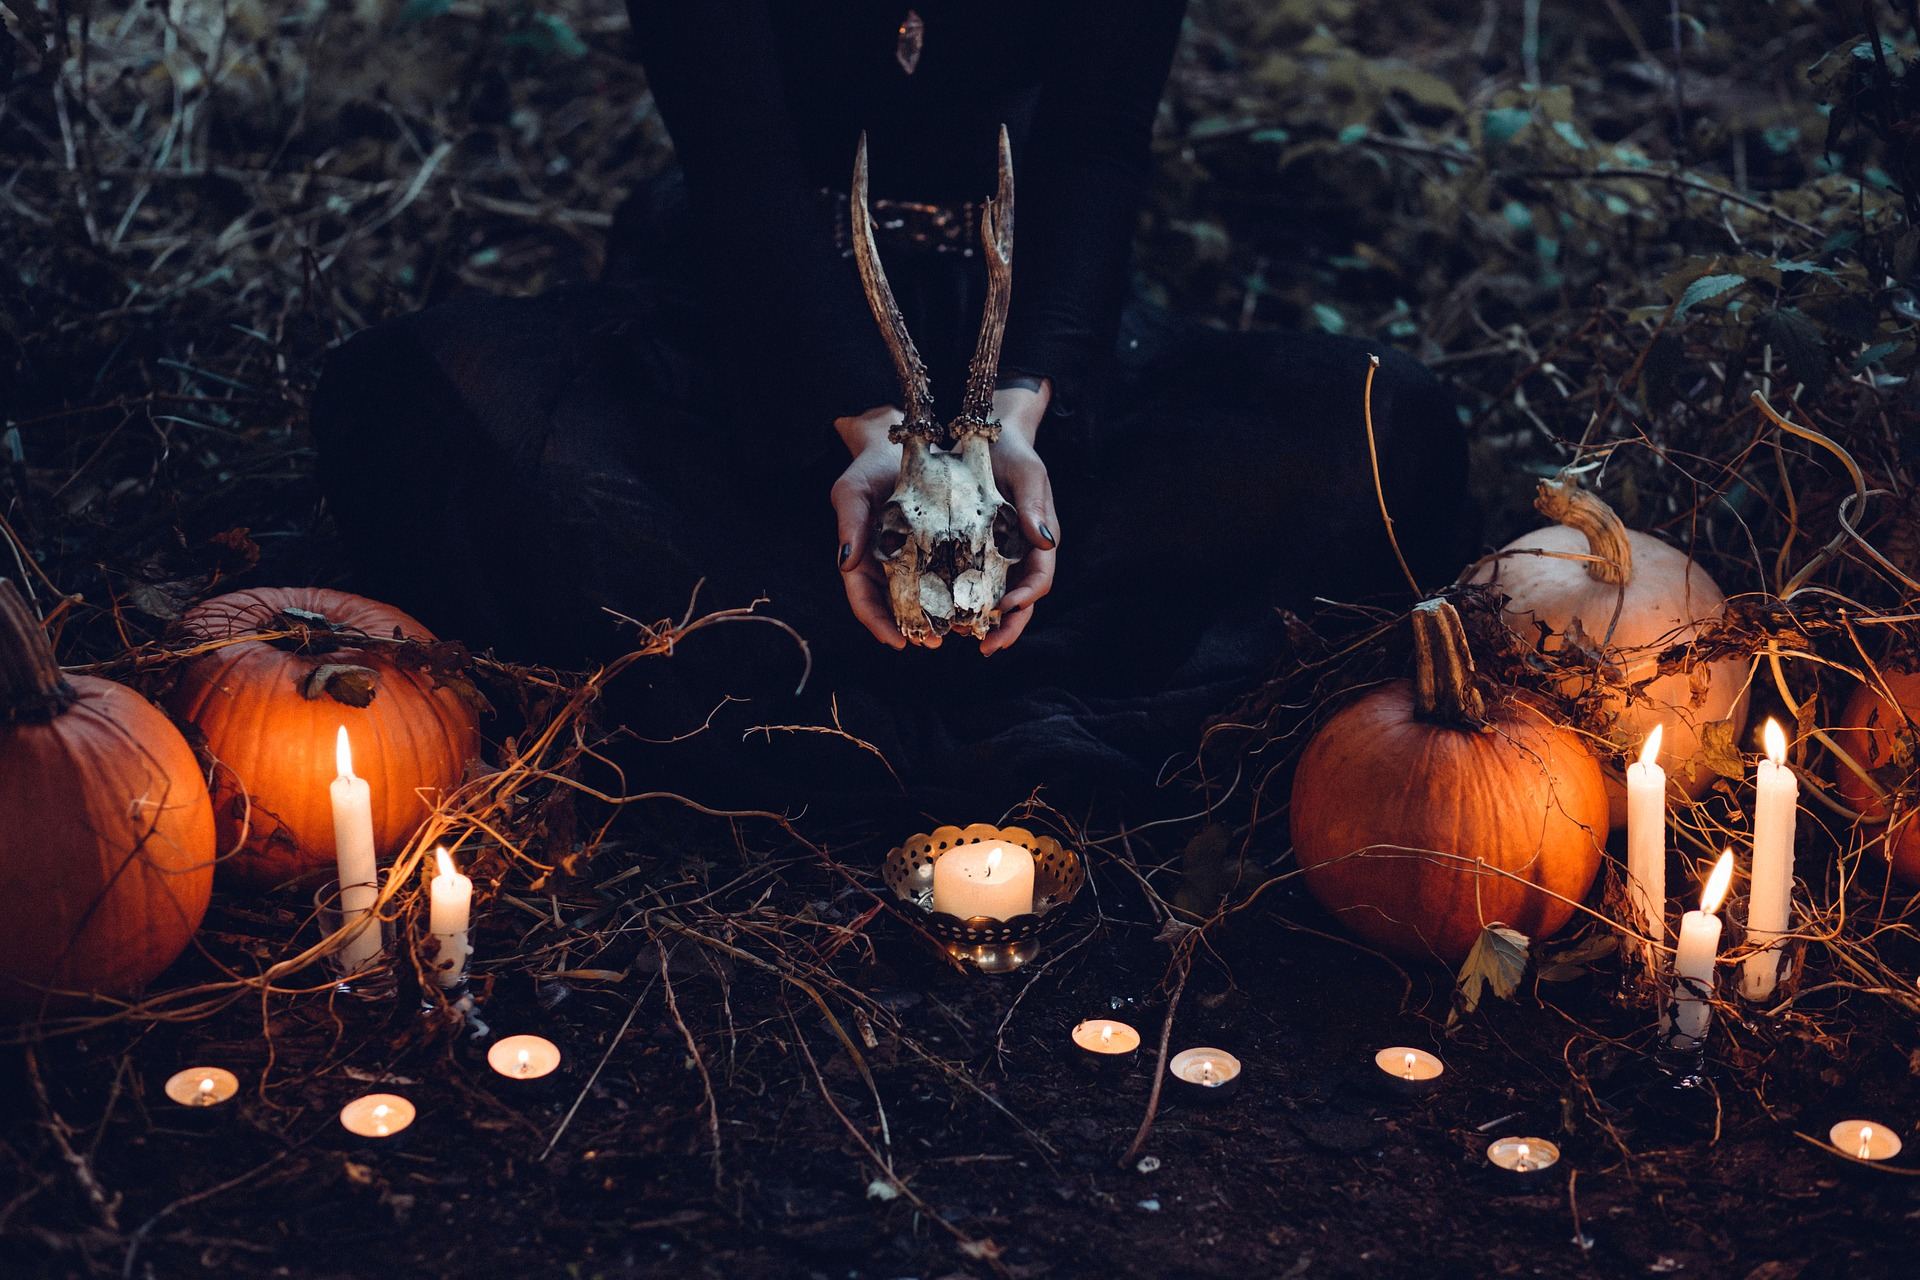 Celitic Ireland Holds the origin of Halloween